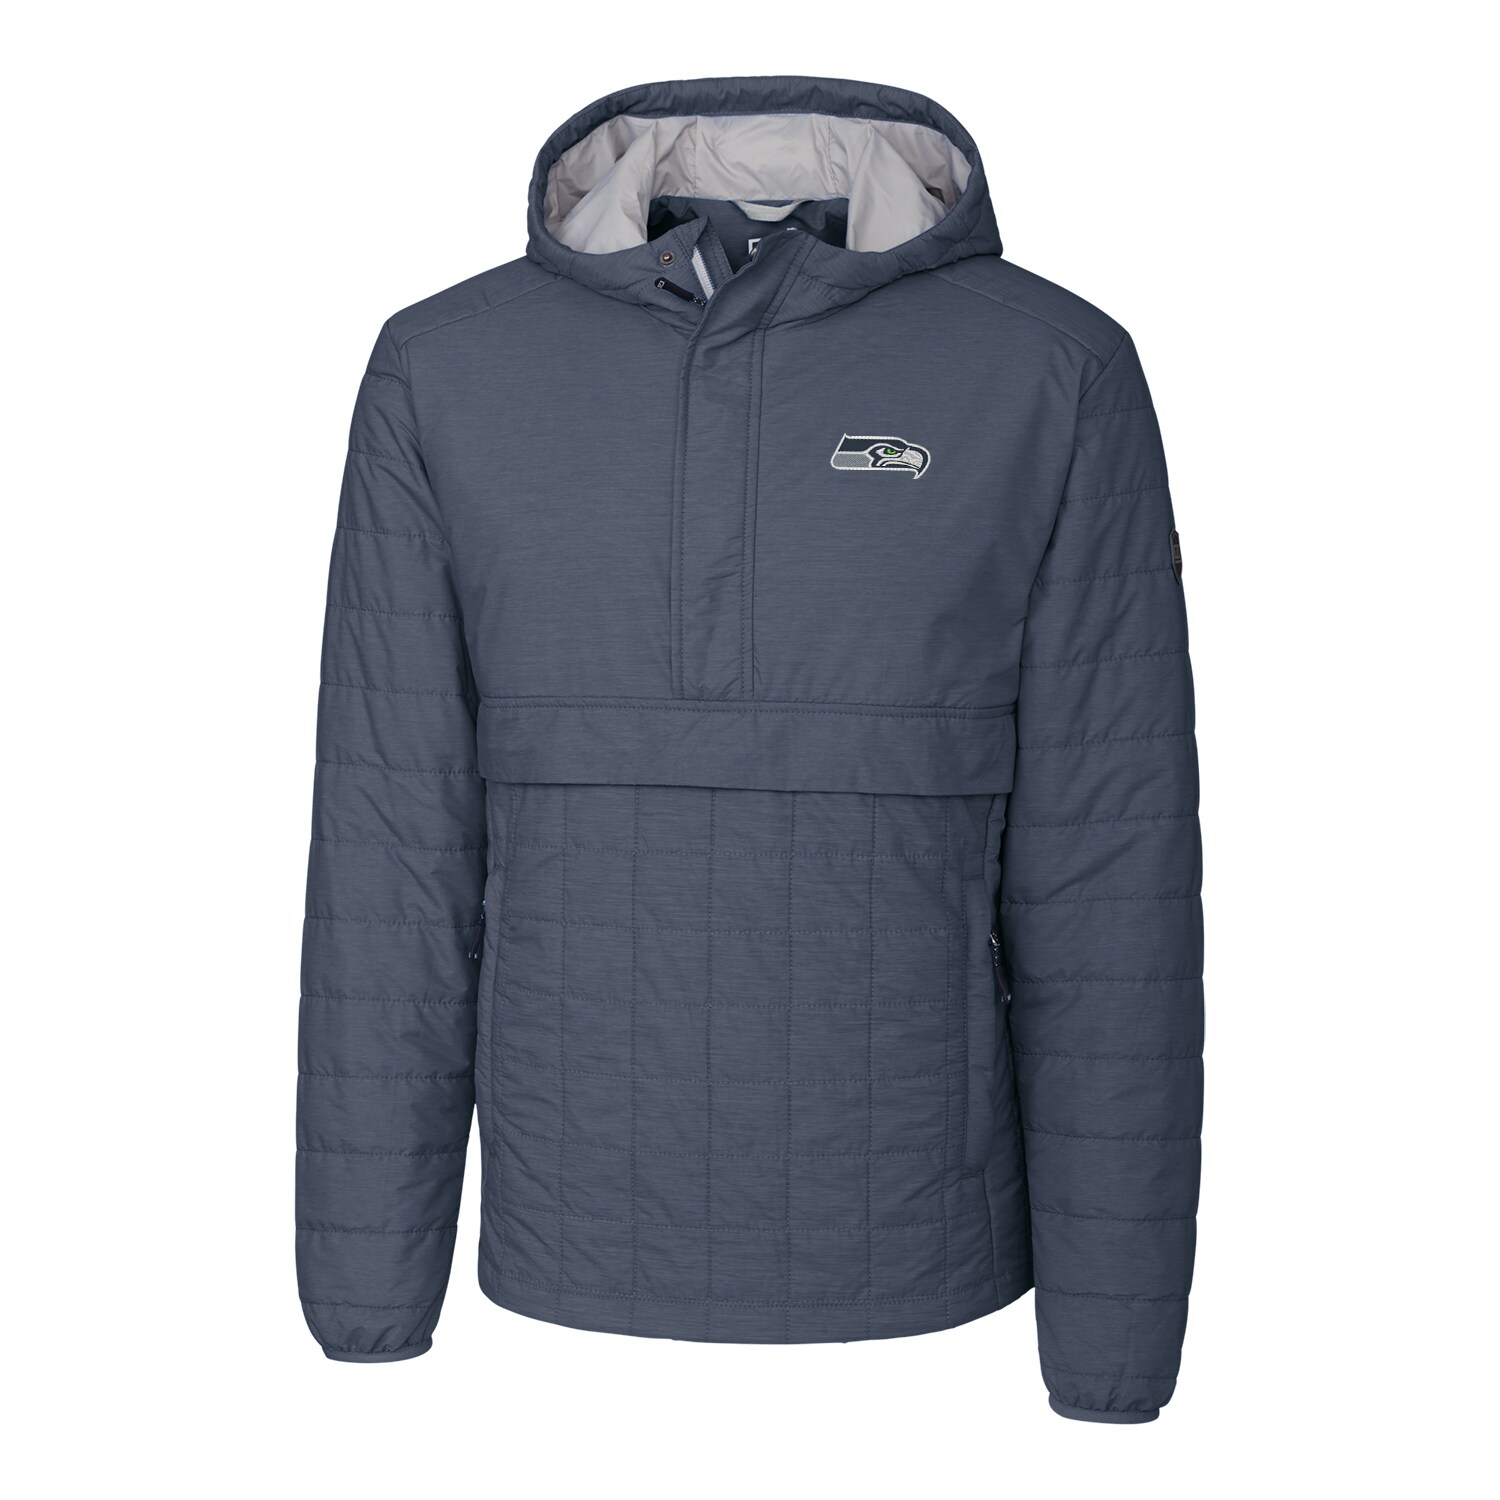 Seattle Seahawks Cutter & Buck Rainier Hooded Half-Zip Pullover Jacket - Charcoal